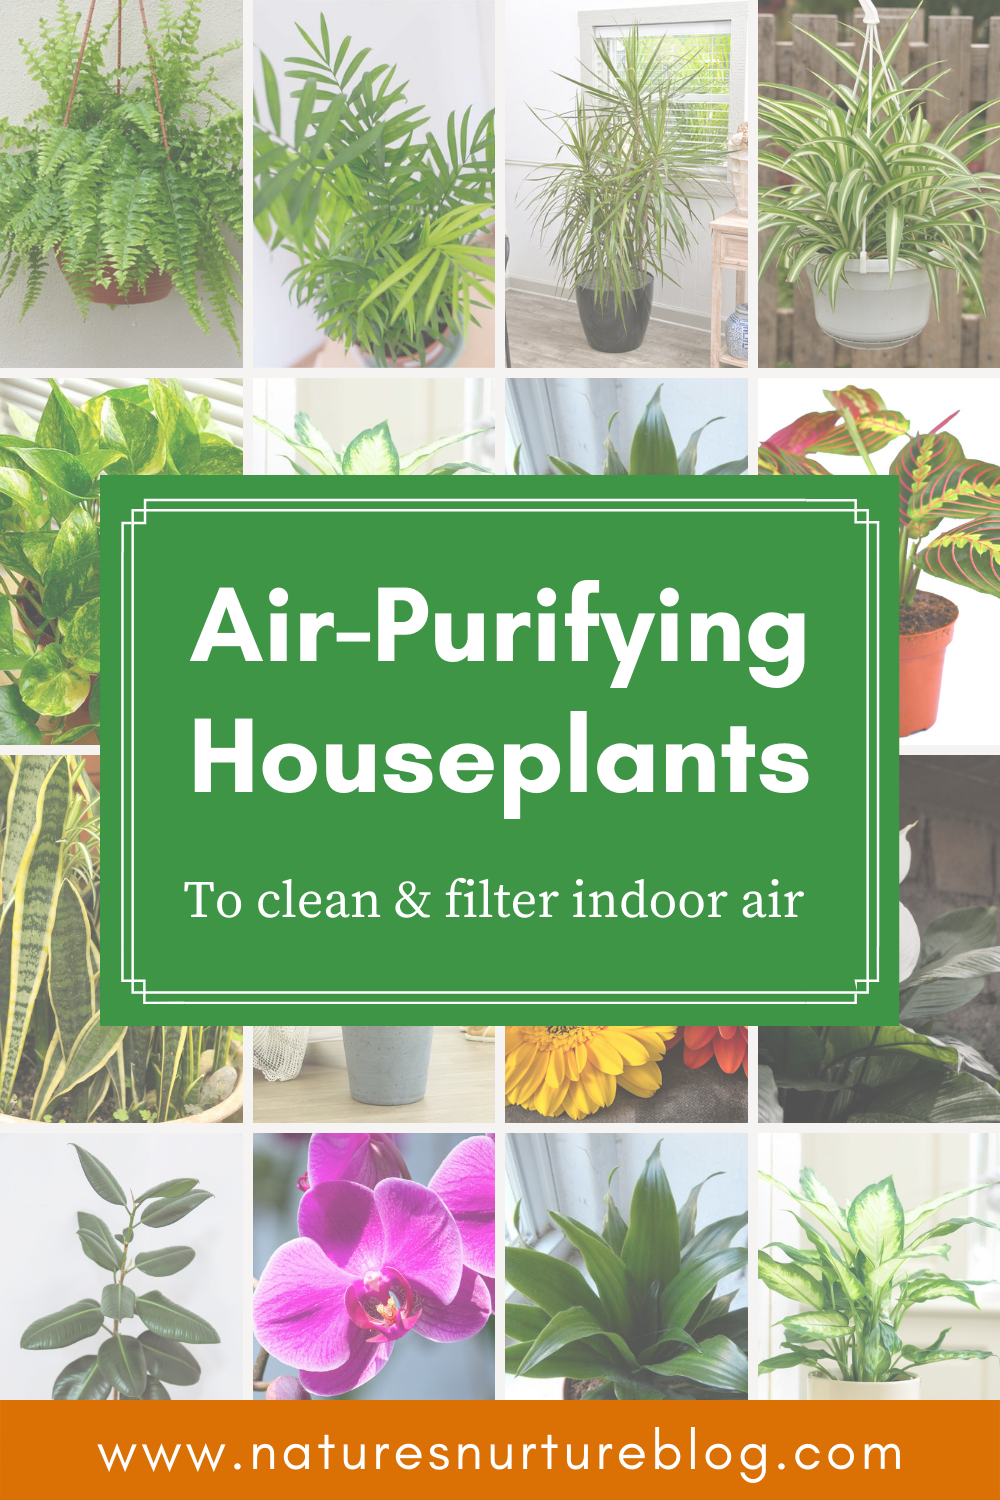 Air Purifying Houseplants to Clean & Filter Indoor Air